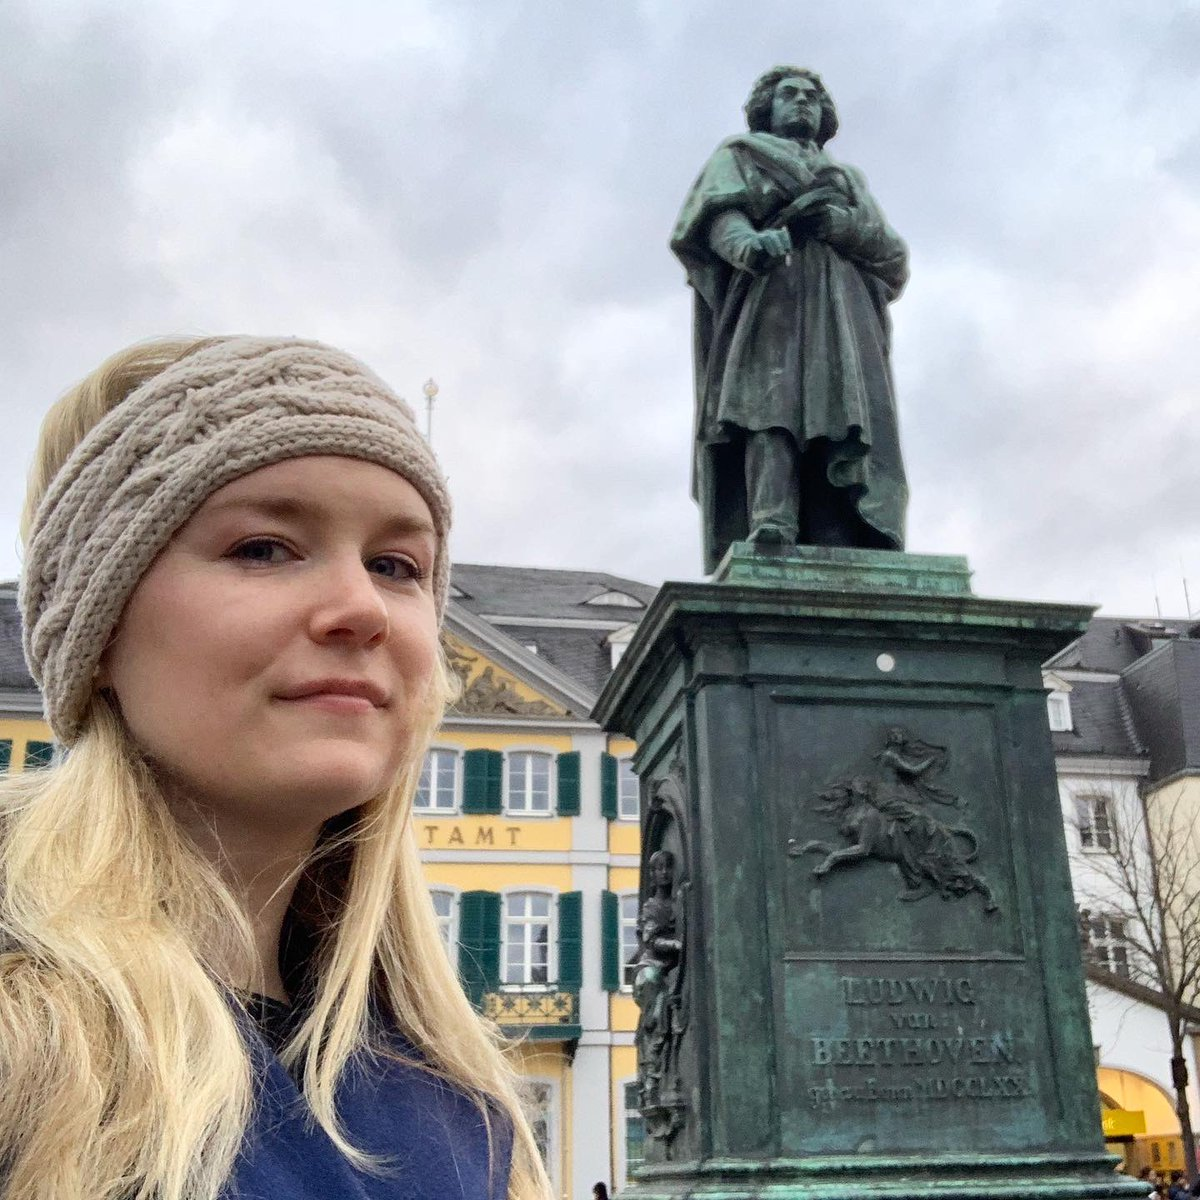 I was so blessed to get to travel all over in February this year right before all the closures and shutdowns occurred. Bonn was especially wonderful! Even though we can't quite travel yet, here's to Beethoven2020!! #beethoven #beethoven2020 #bthvn2020 #bonn #bonngermany https://t.co/GfMi1FyRHH